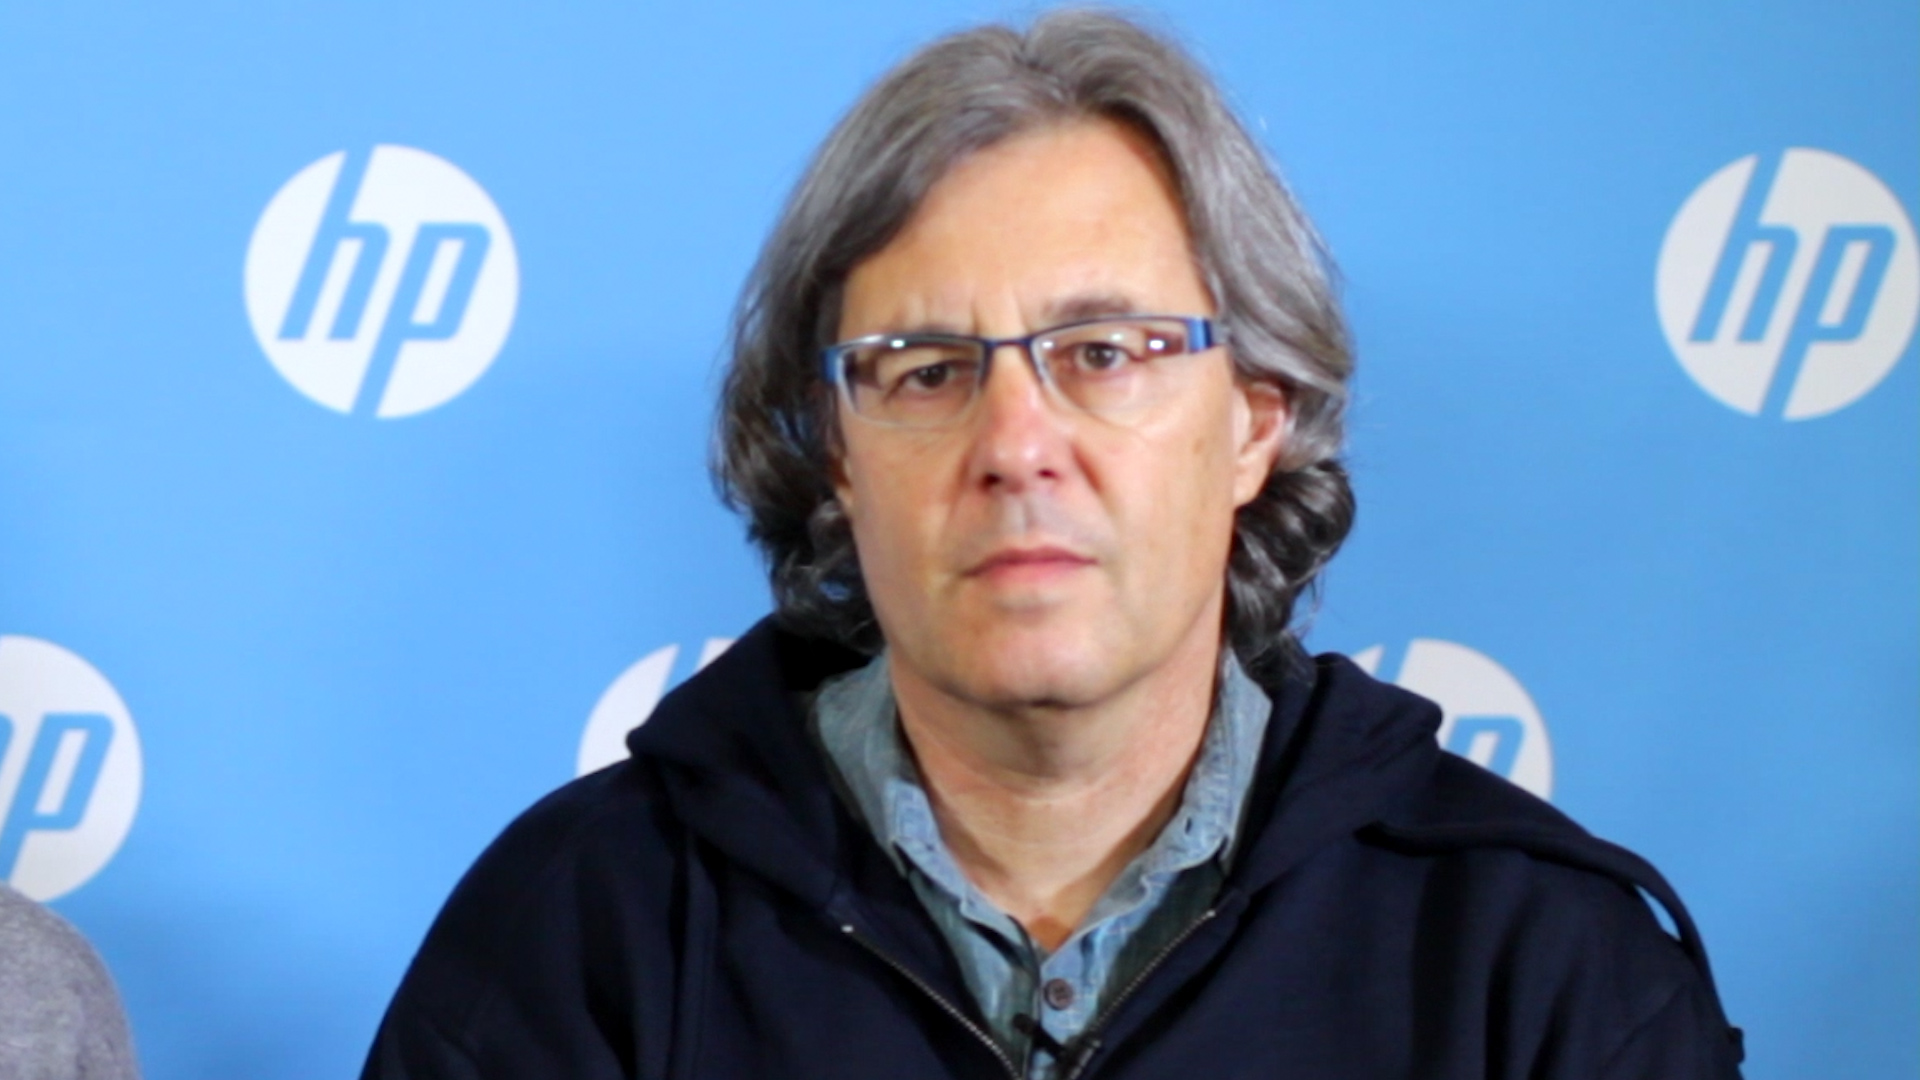 Video preview: HP's Alon Bar-Shany on Growing Digital Printing Business